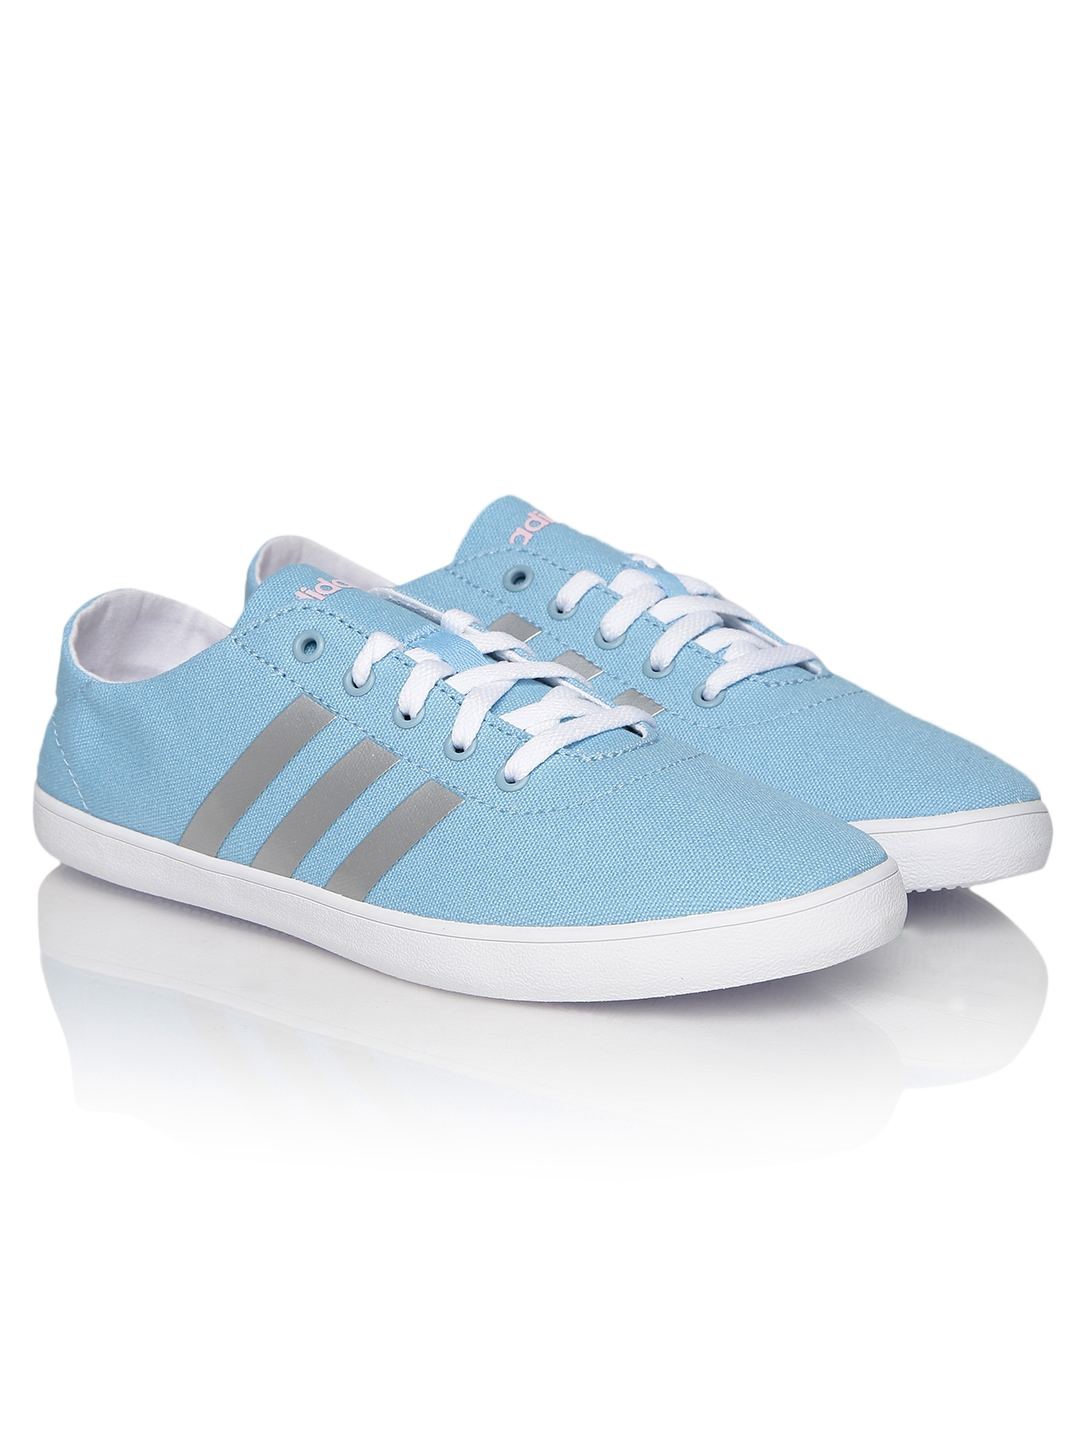 adidas neo casual shoes